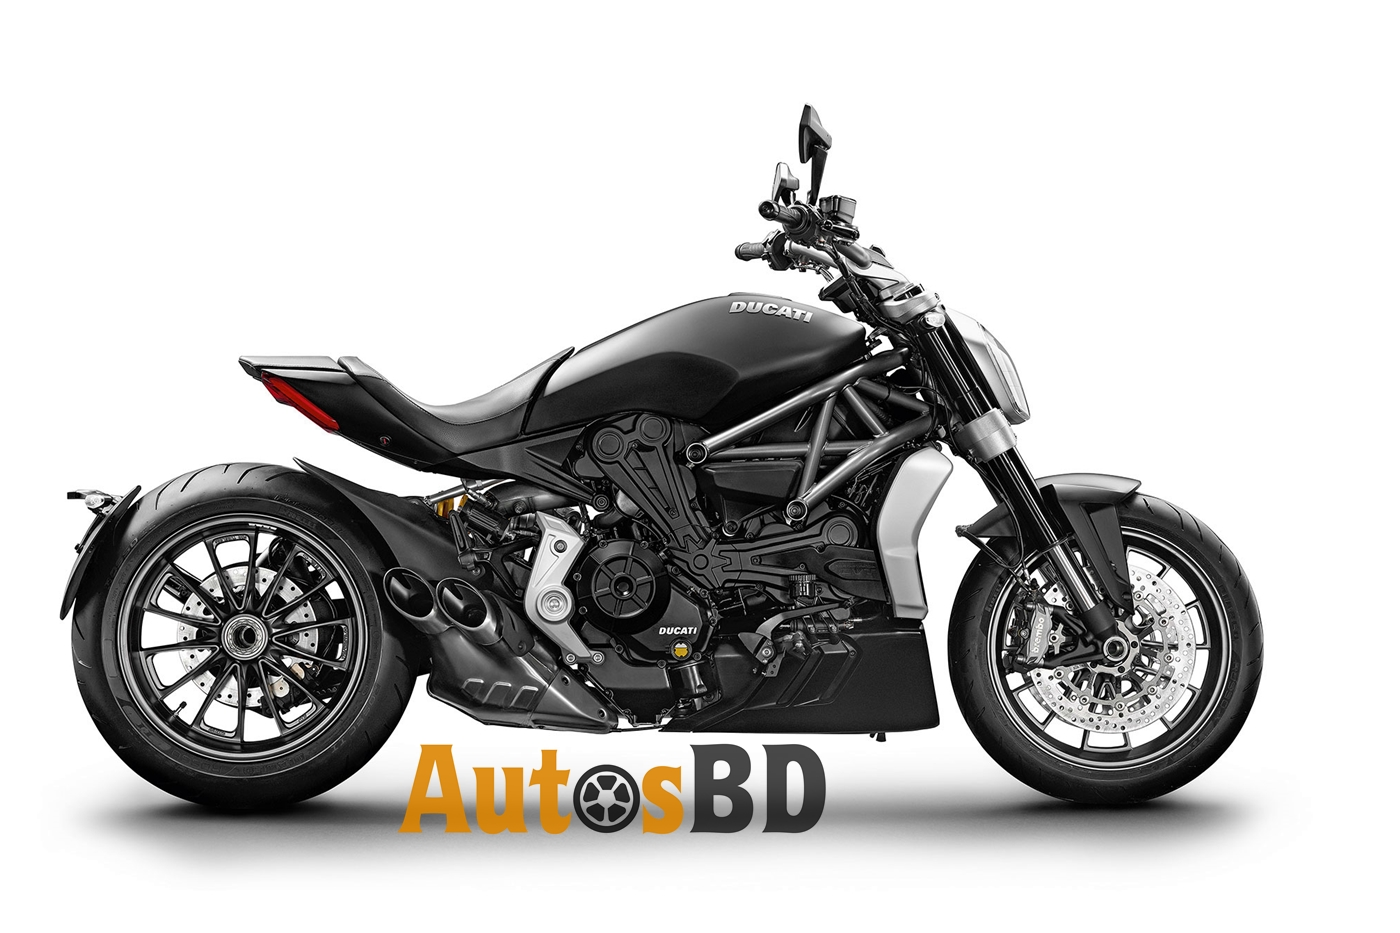 Ducati XDiavel Motorcycle Specification